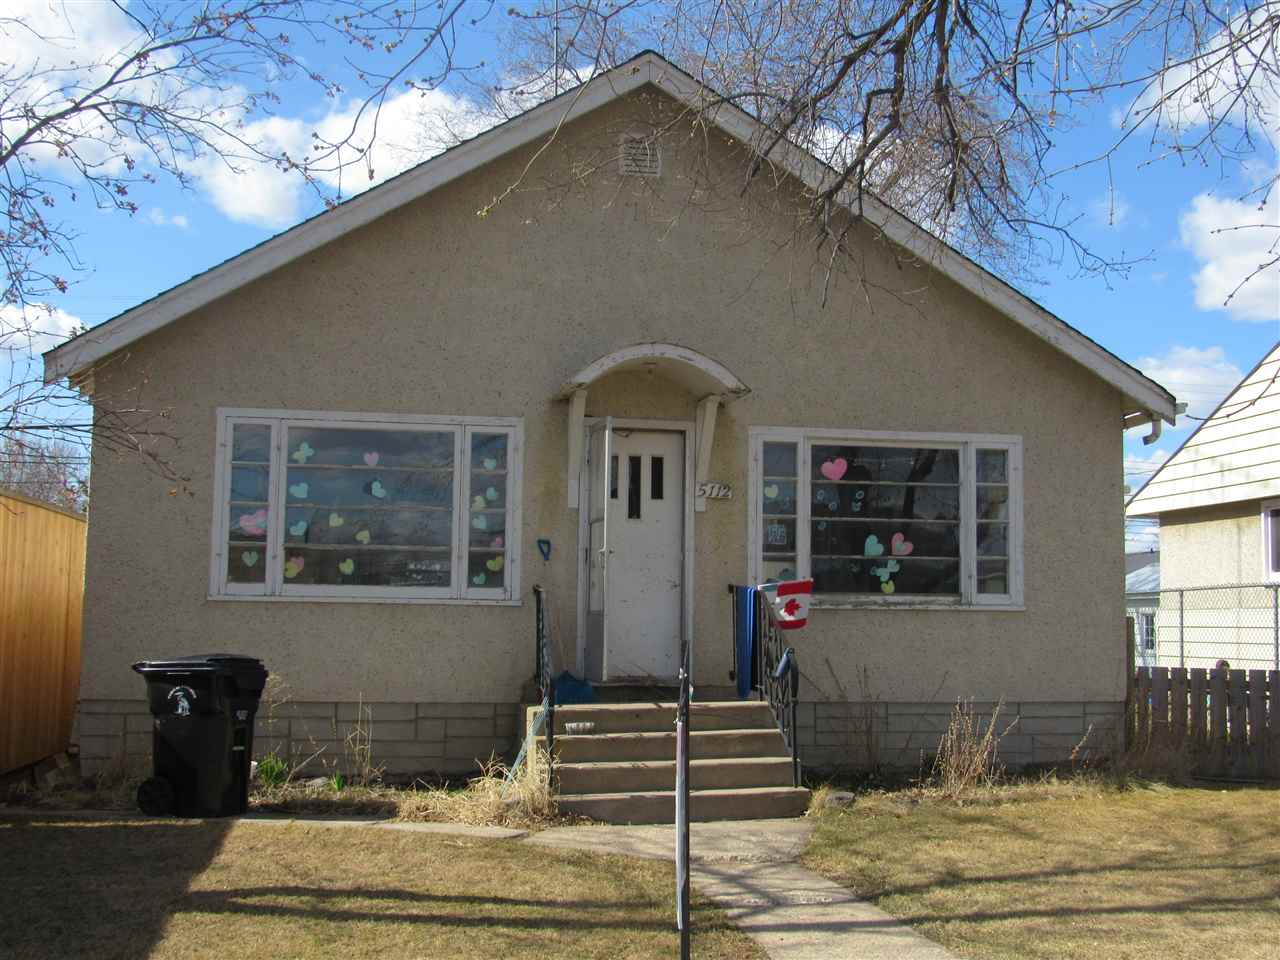 Lots of potential with some TLC here. This 3 bedroom bungalow has original hardwood floors, a big kitchen and living room and the bedrooms are a nice size. Located close to schools and downtown, it could be perfect for a young family.There is a newer furnace and a brand new hot water tank. It has a full basement for storage and a big backyard as well.